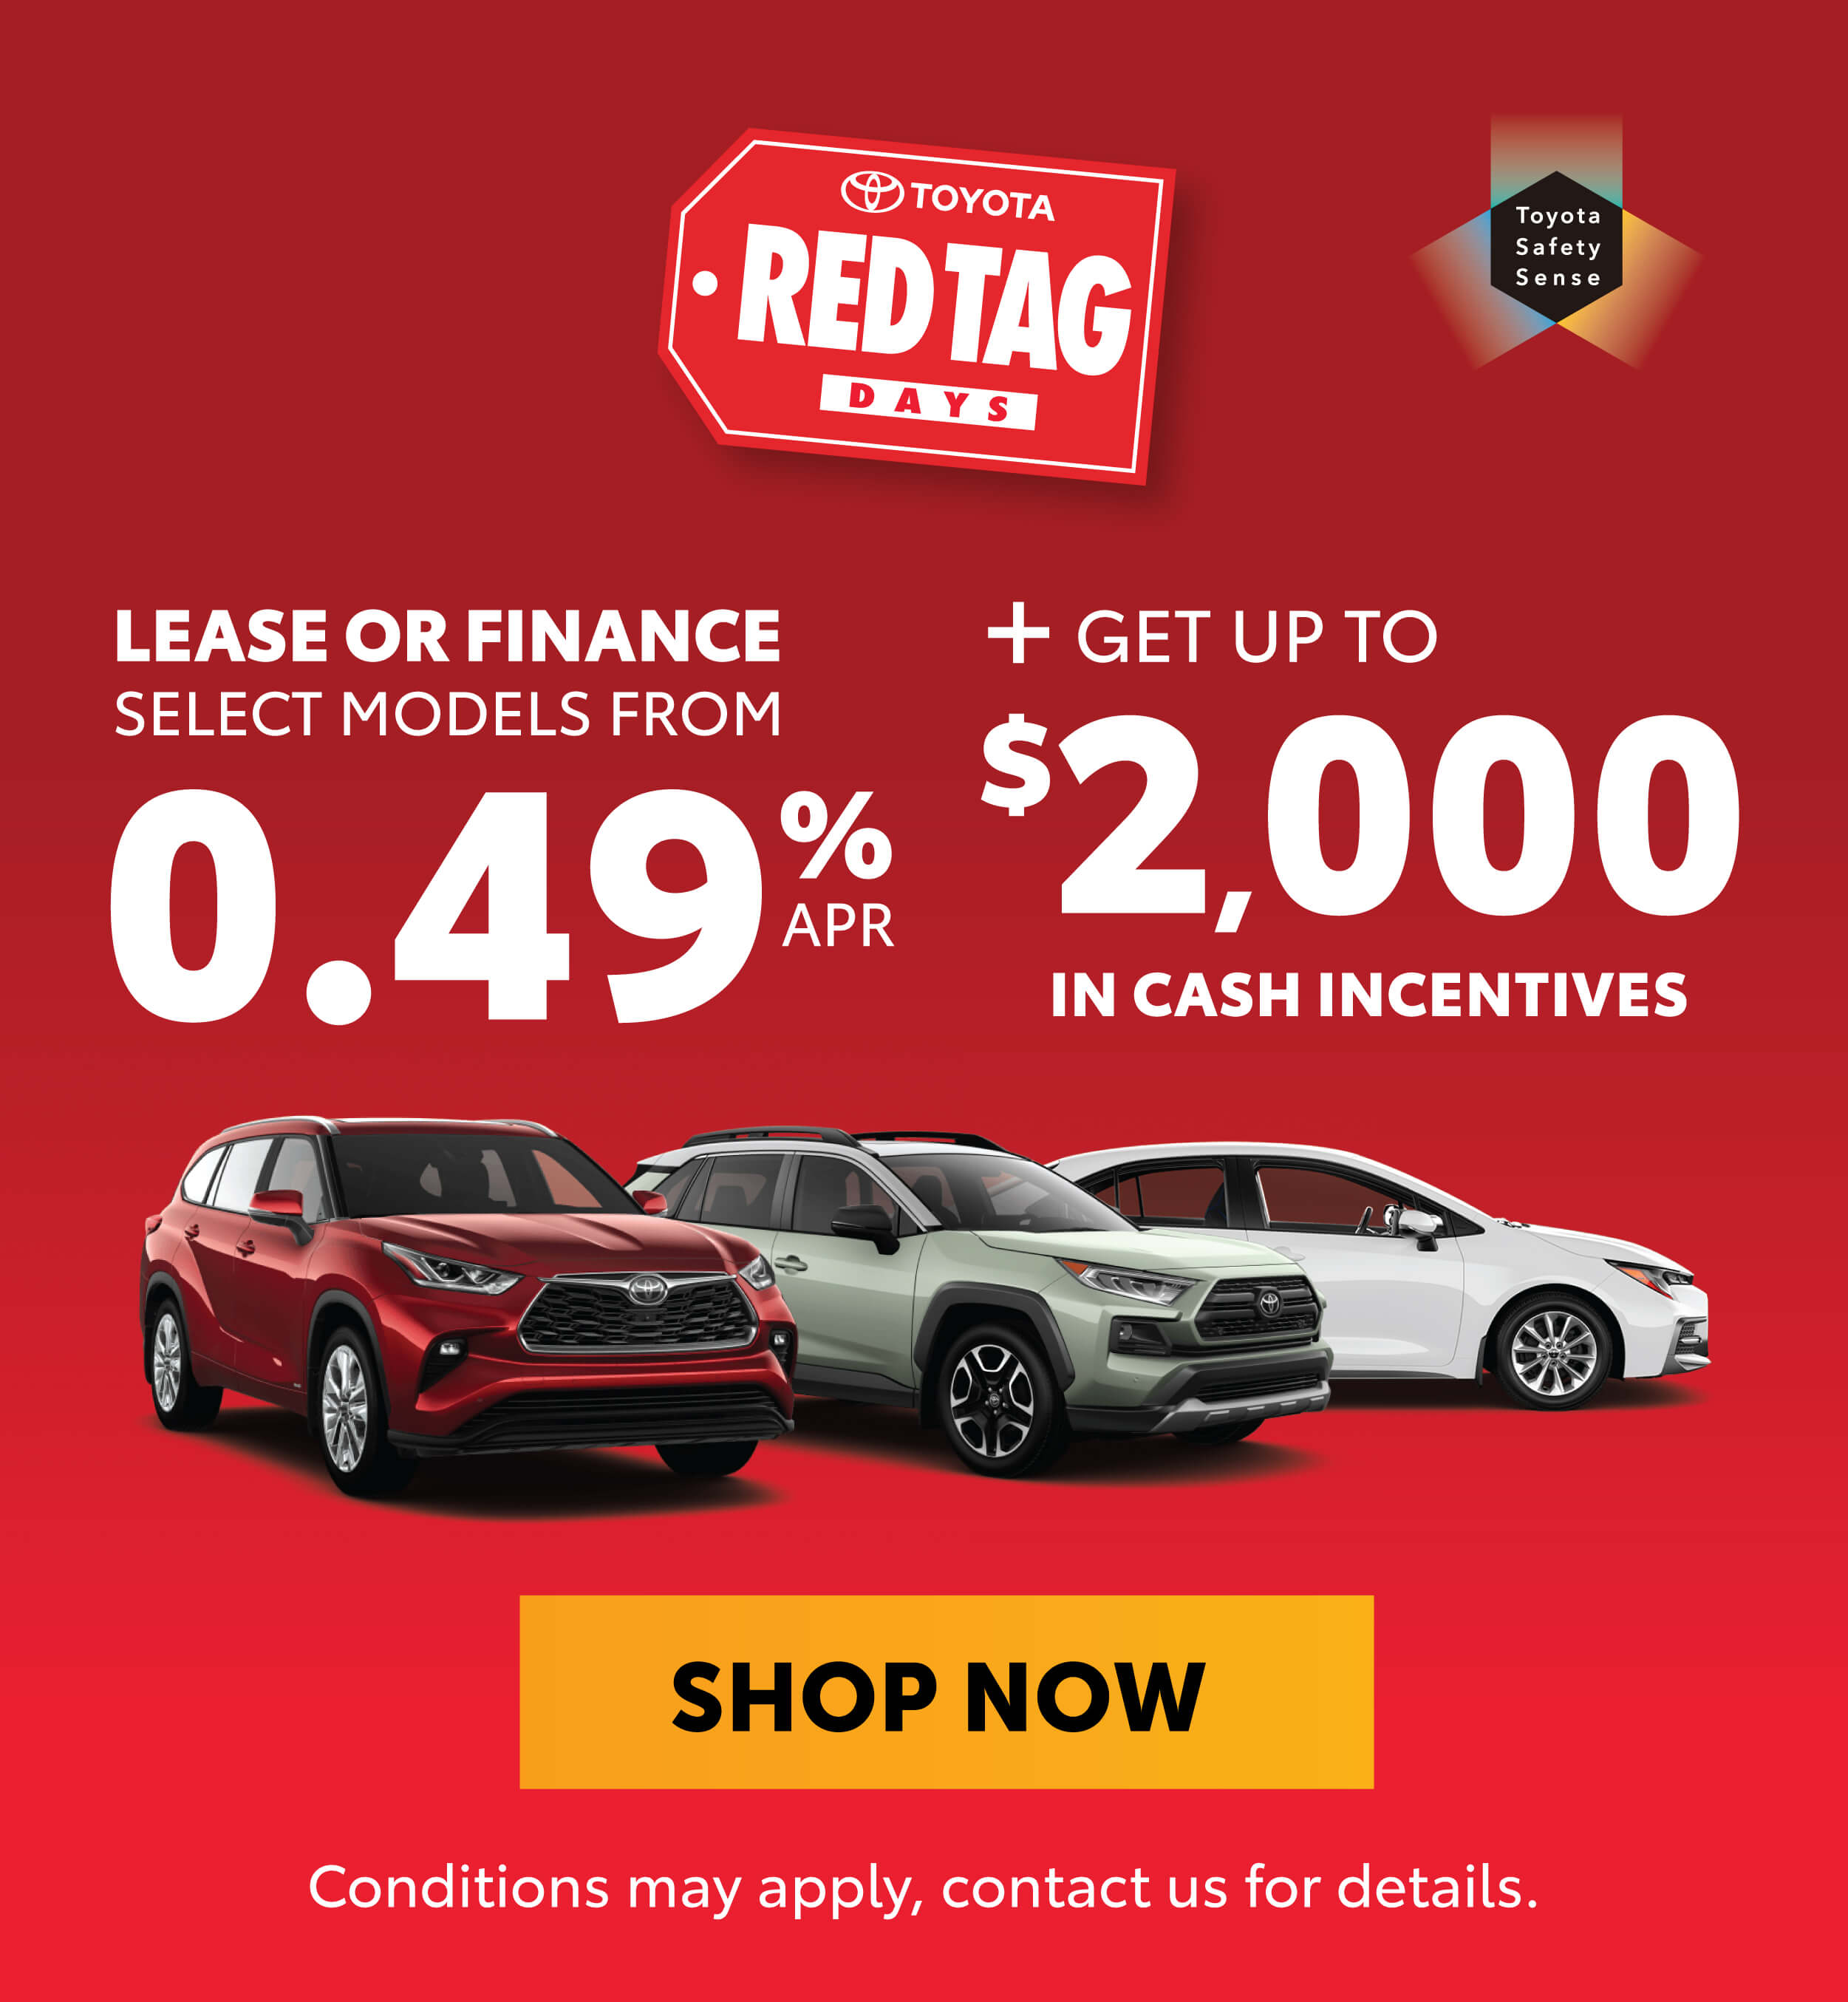 Red Tag Days Offers at Goderich Toyota